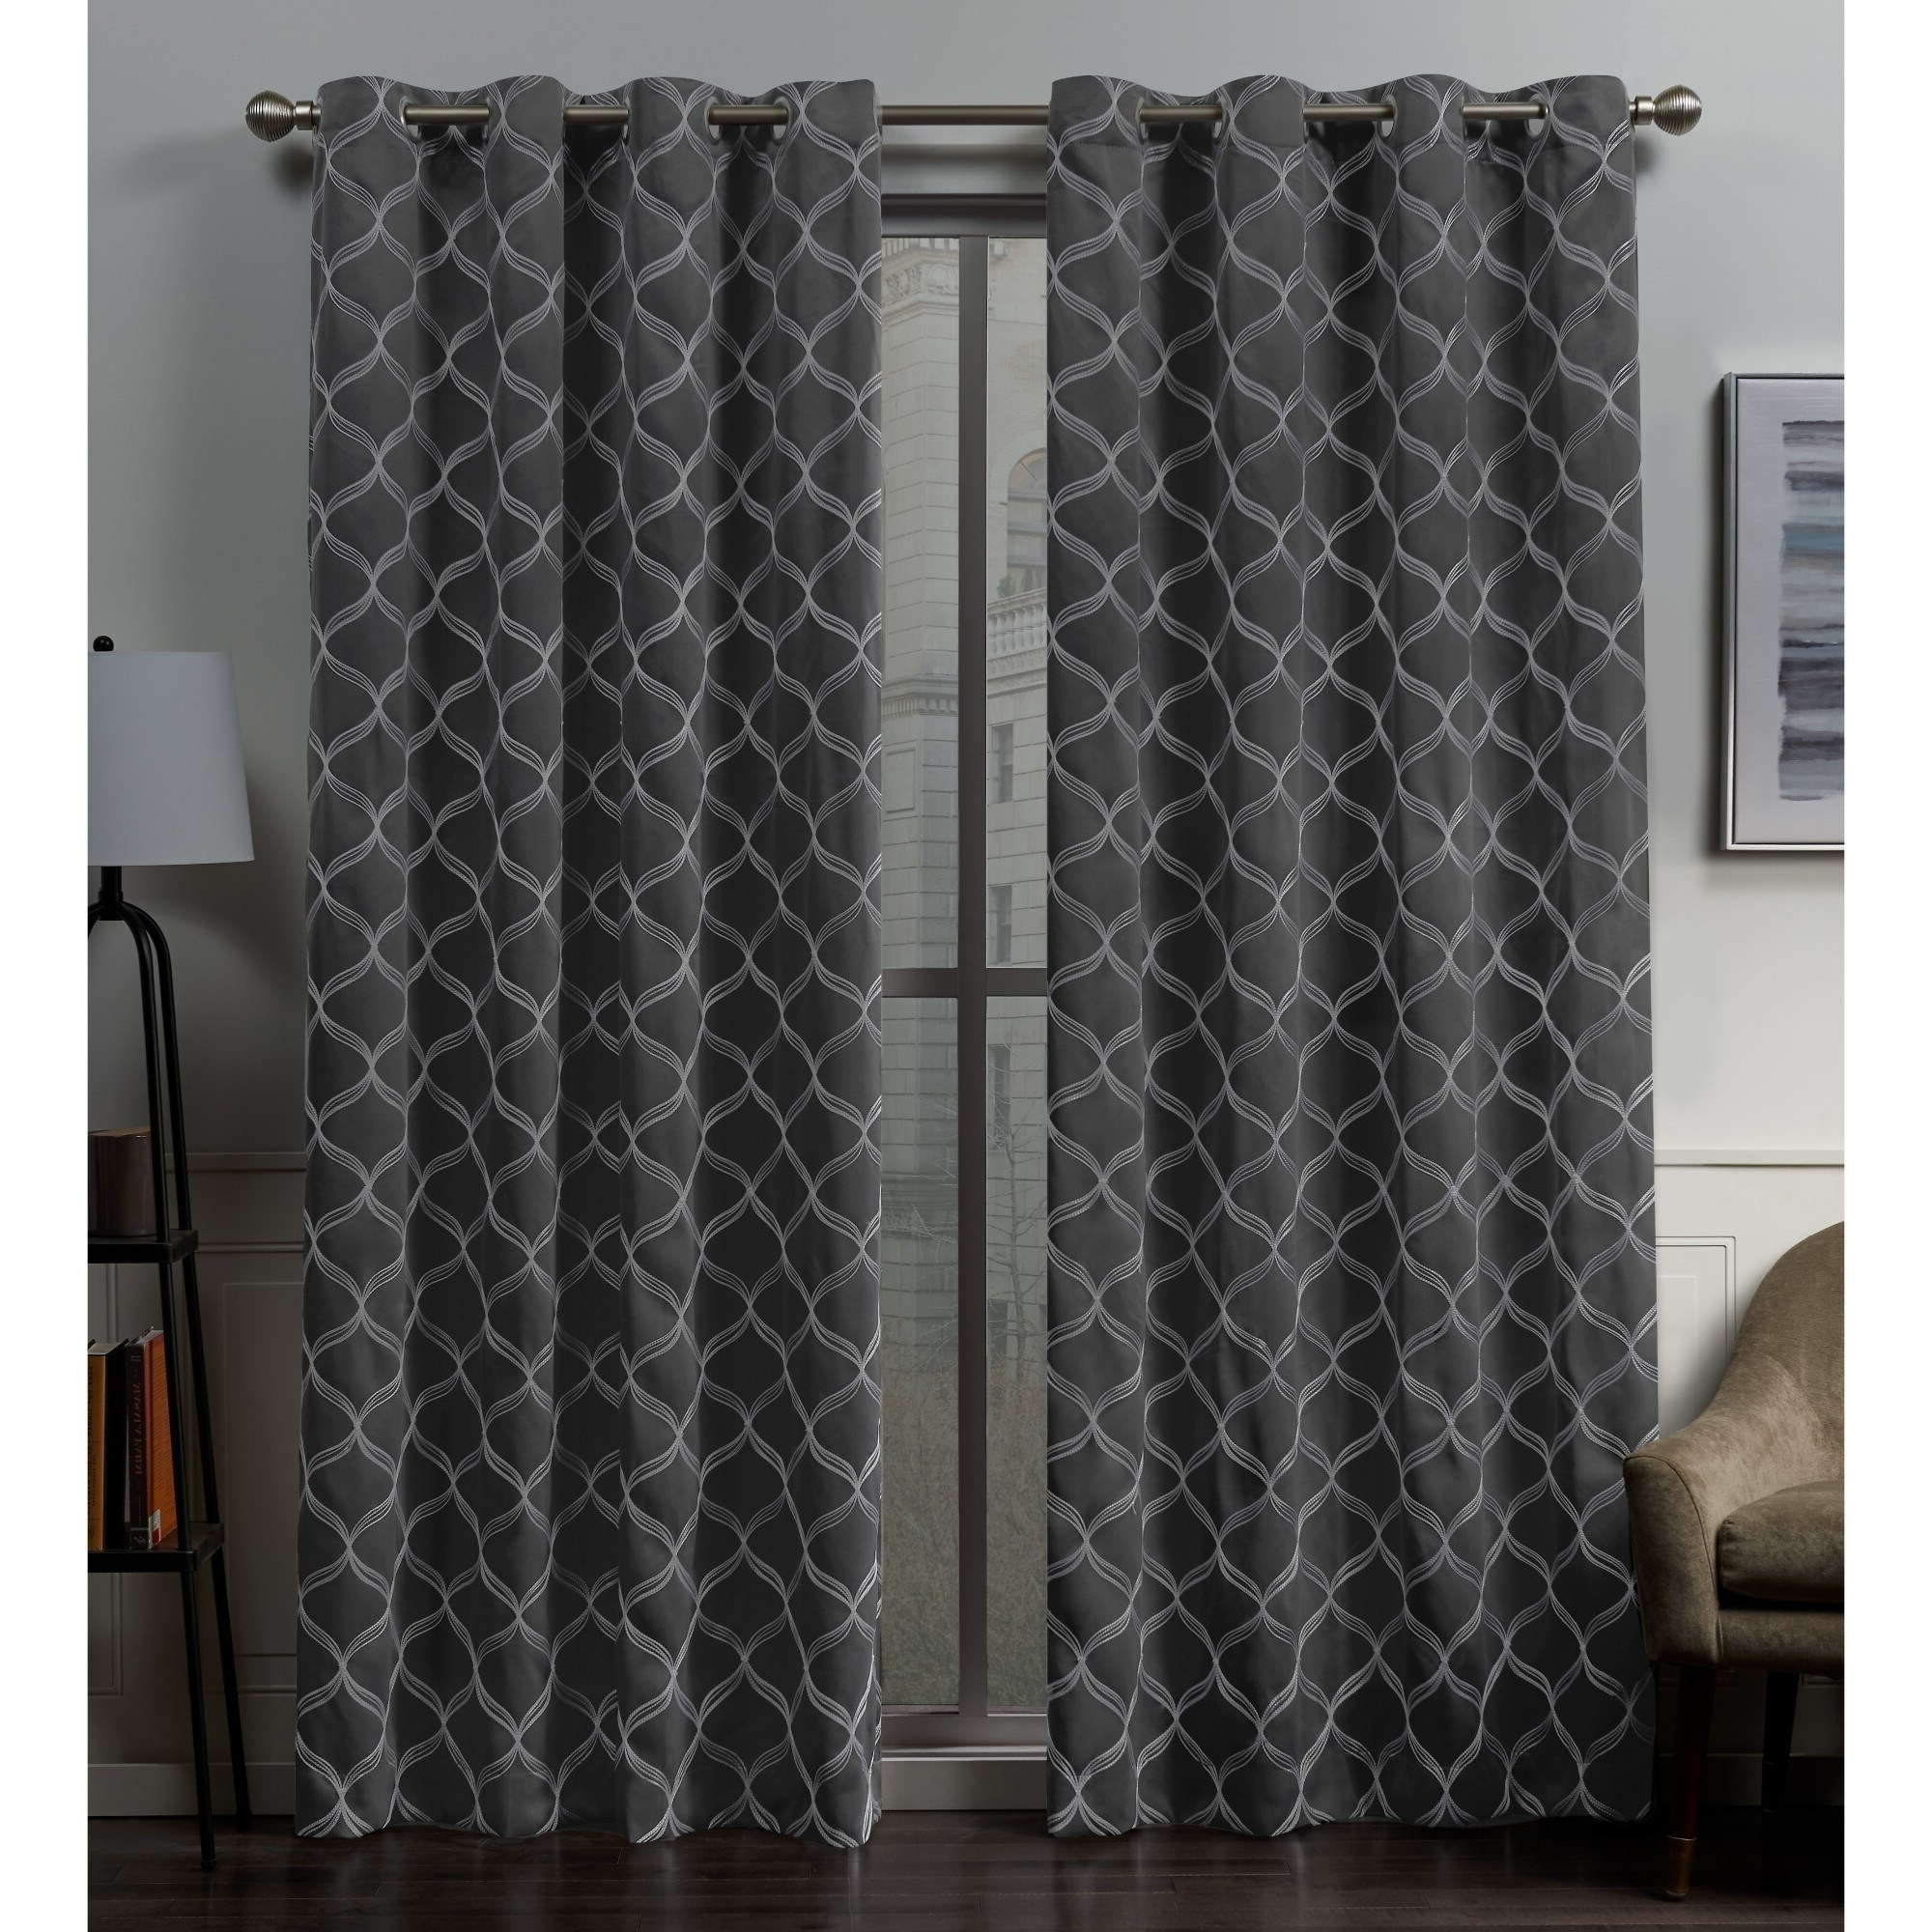 Easton Thermal Woven Blackout Grommet Top Curtain Panel Pairs Inside Current Ati Home Amelia Woven Blackout Grommet Top Curtain Panel (View 15 of 20)